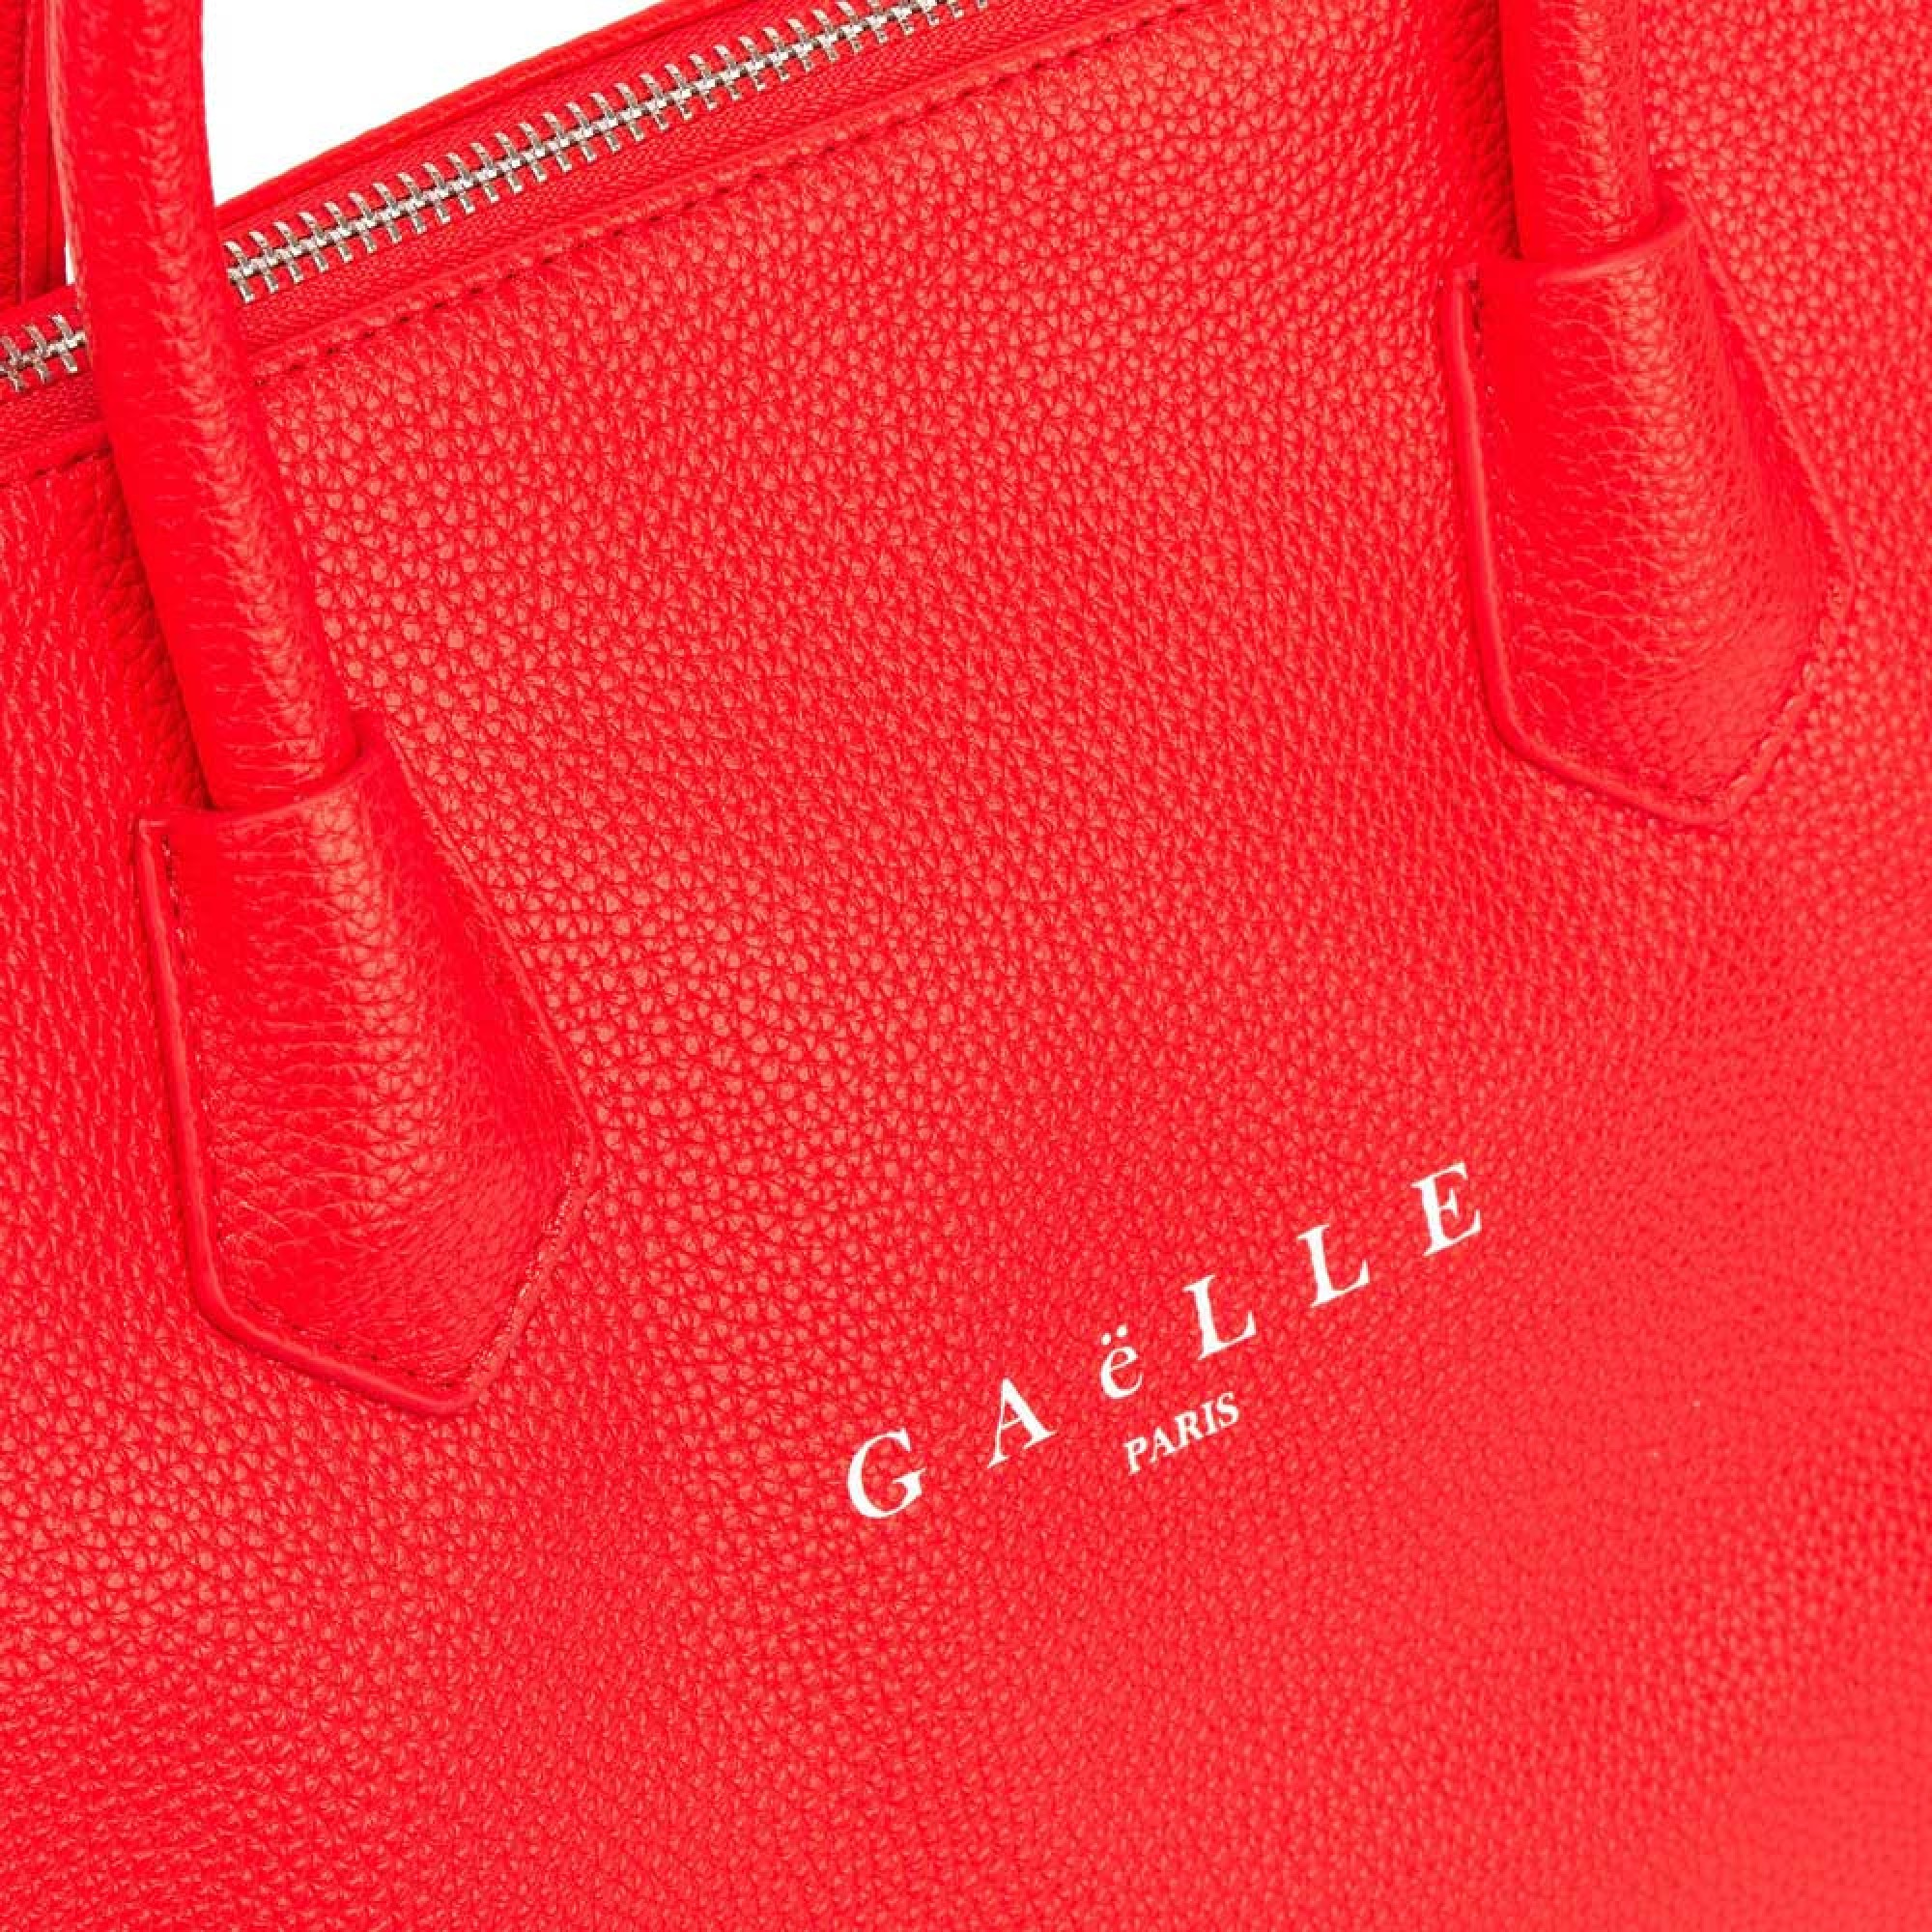 BAG - GBDA1422 - GAELLE PARIS